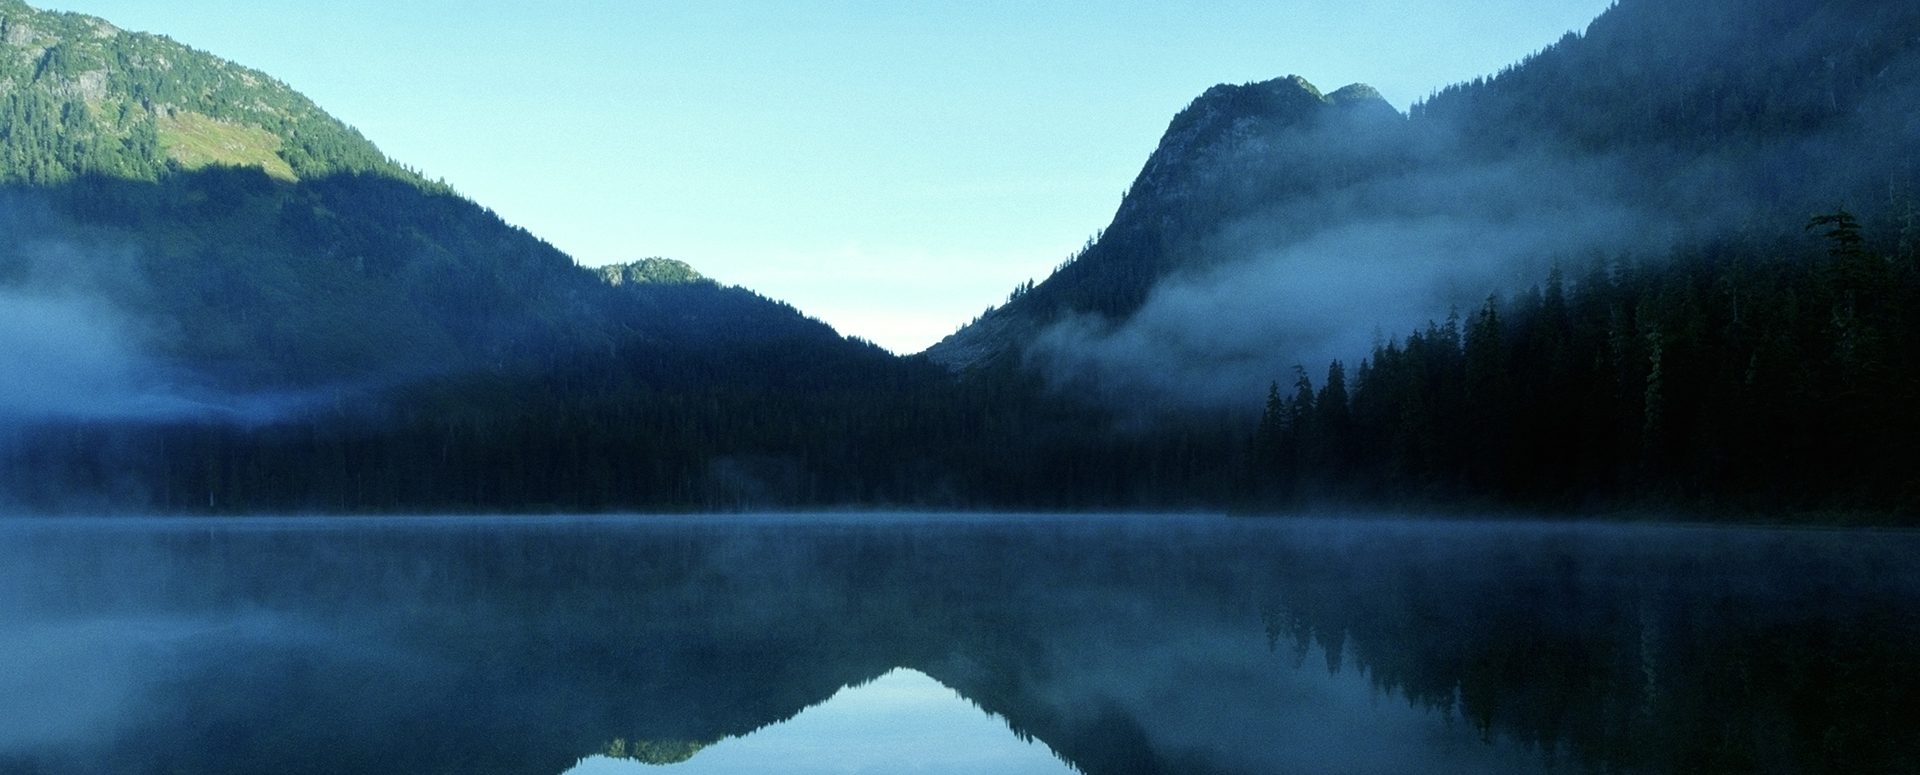 Canada, British Columbia, Whistler, Madely Lake, cover with fog